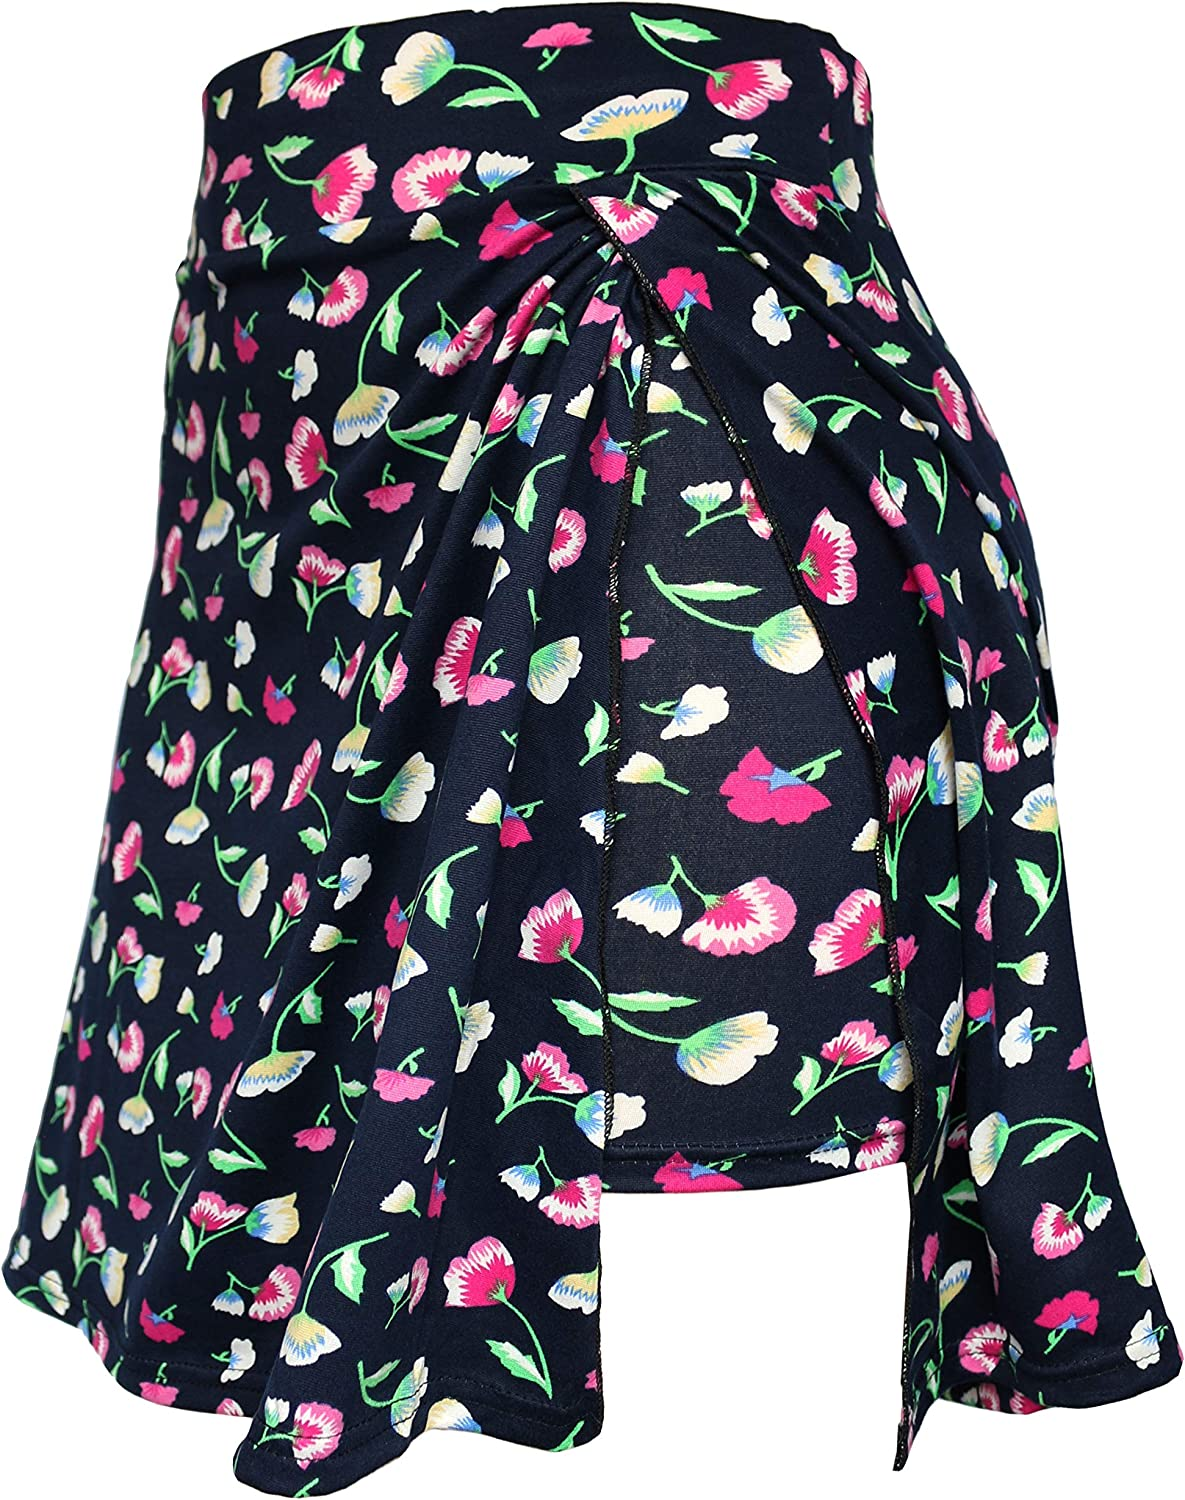 KMystic Womens Lightweight Skort Performance Tennis Skirt